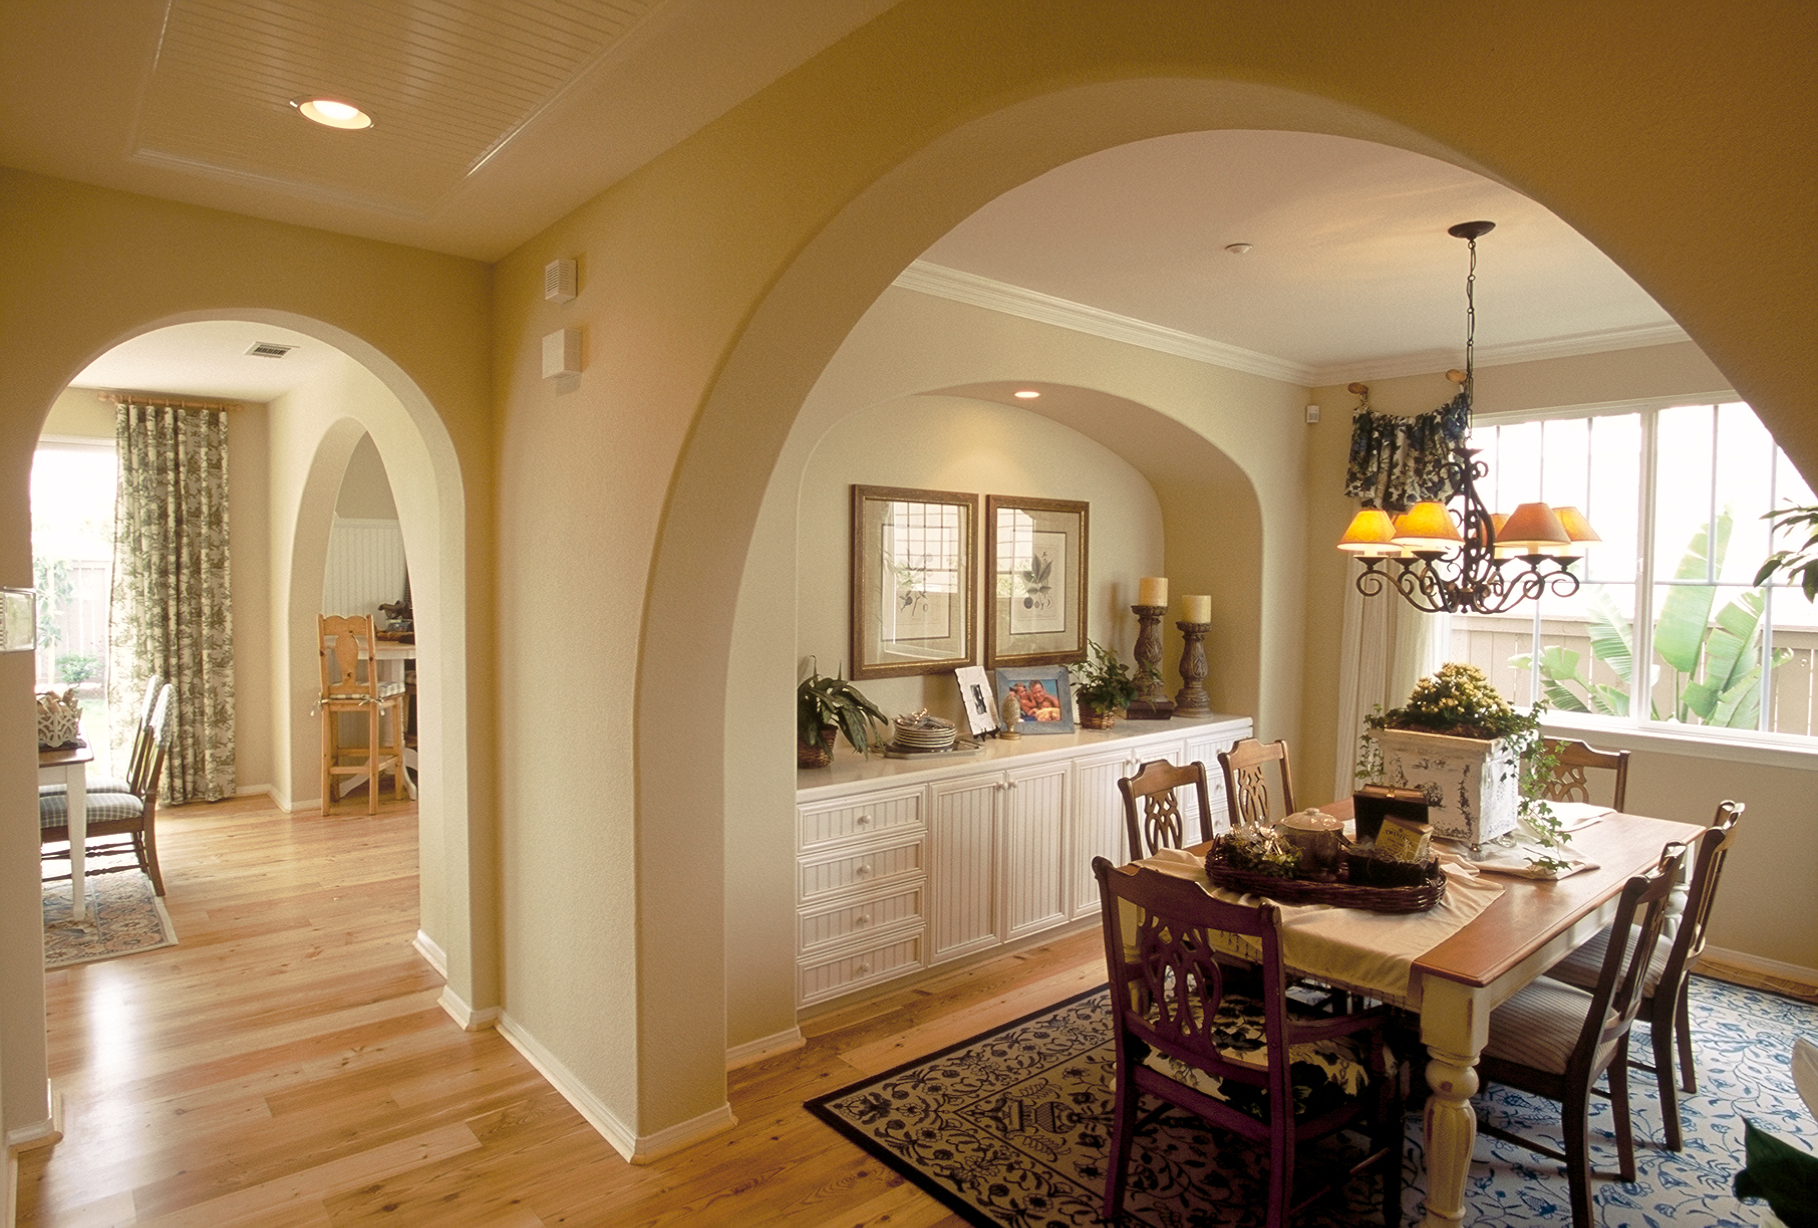 Braemar architectural photography